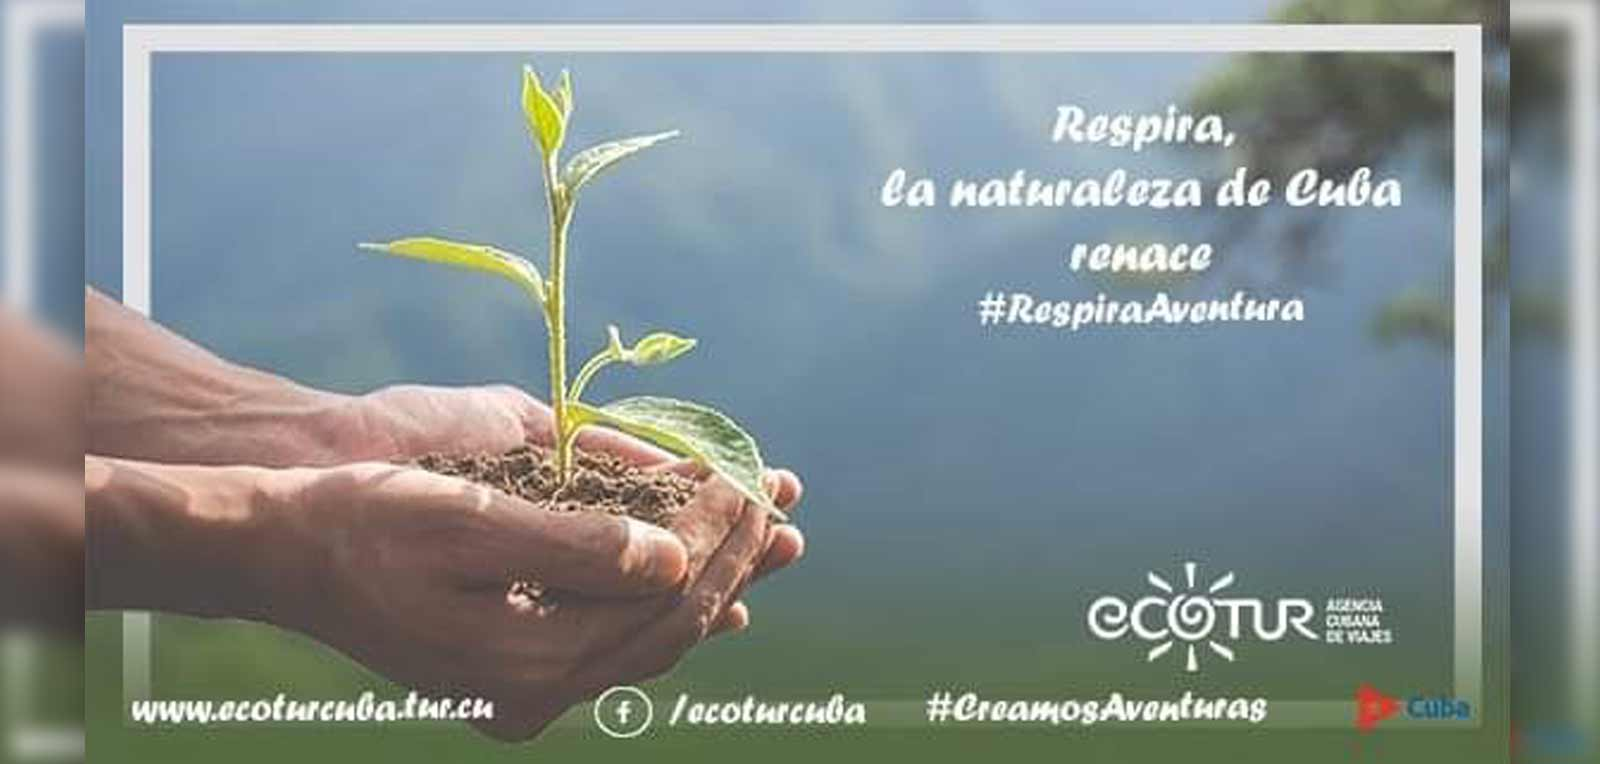 Ecotur invites for largest meeting of nature tourism in Cuba